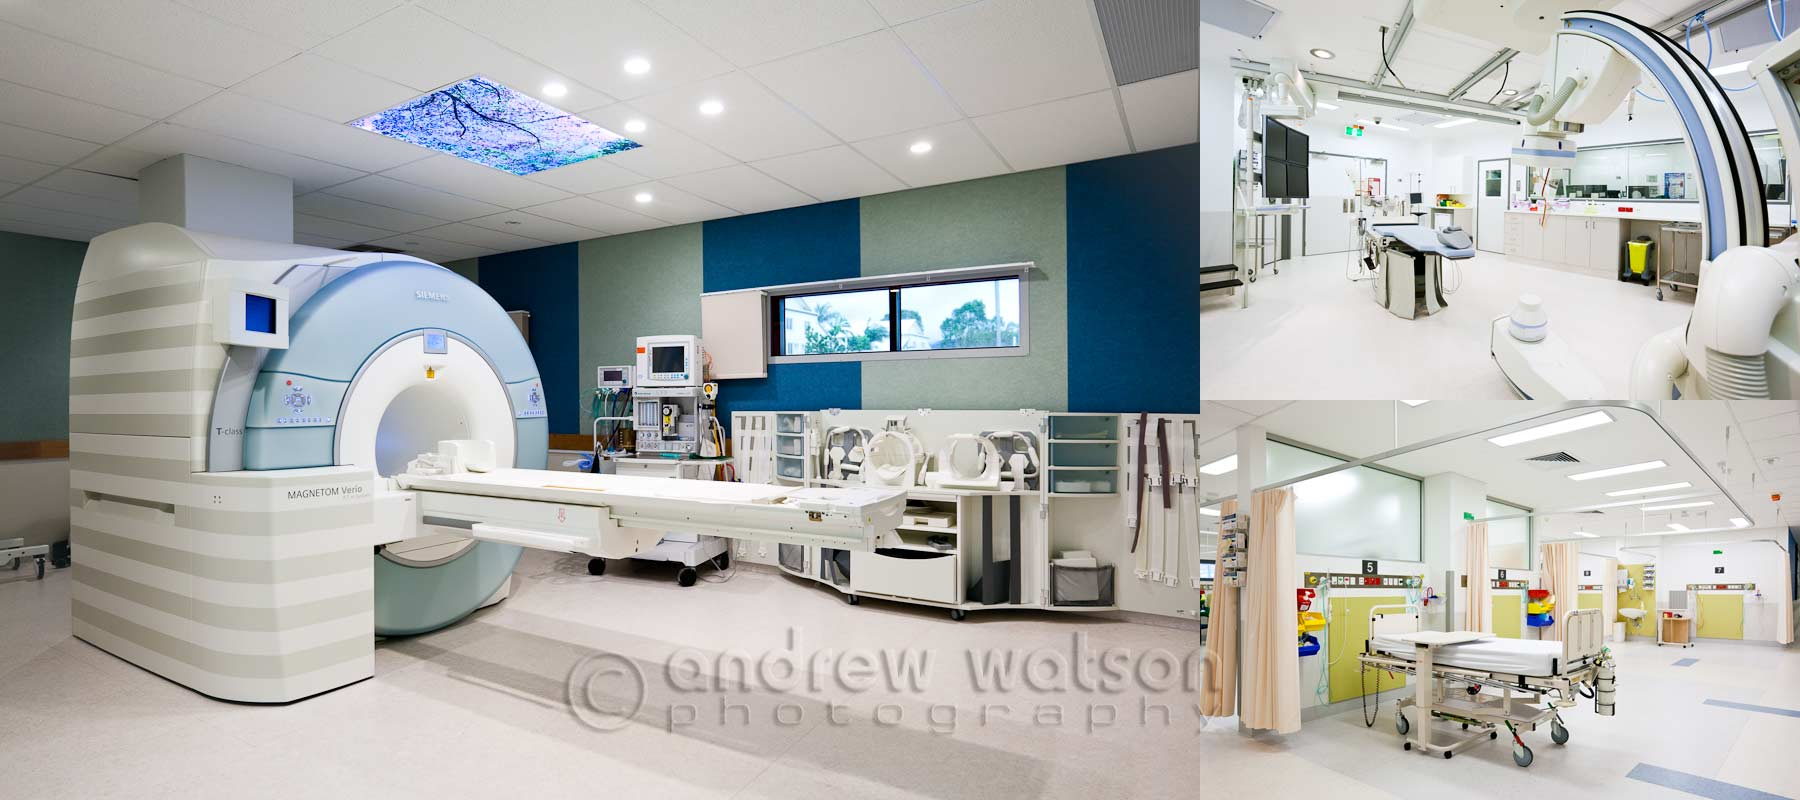 Architecture photography - Cairns Base Hospital MRI & Cath-Lab